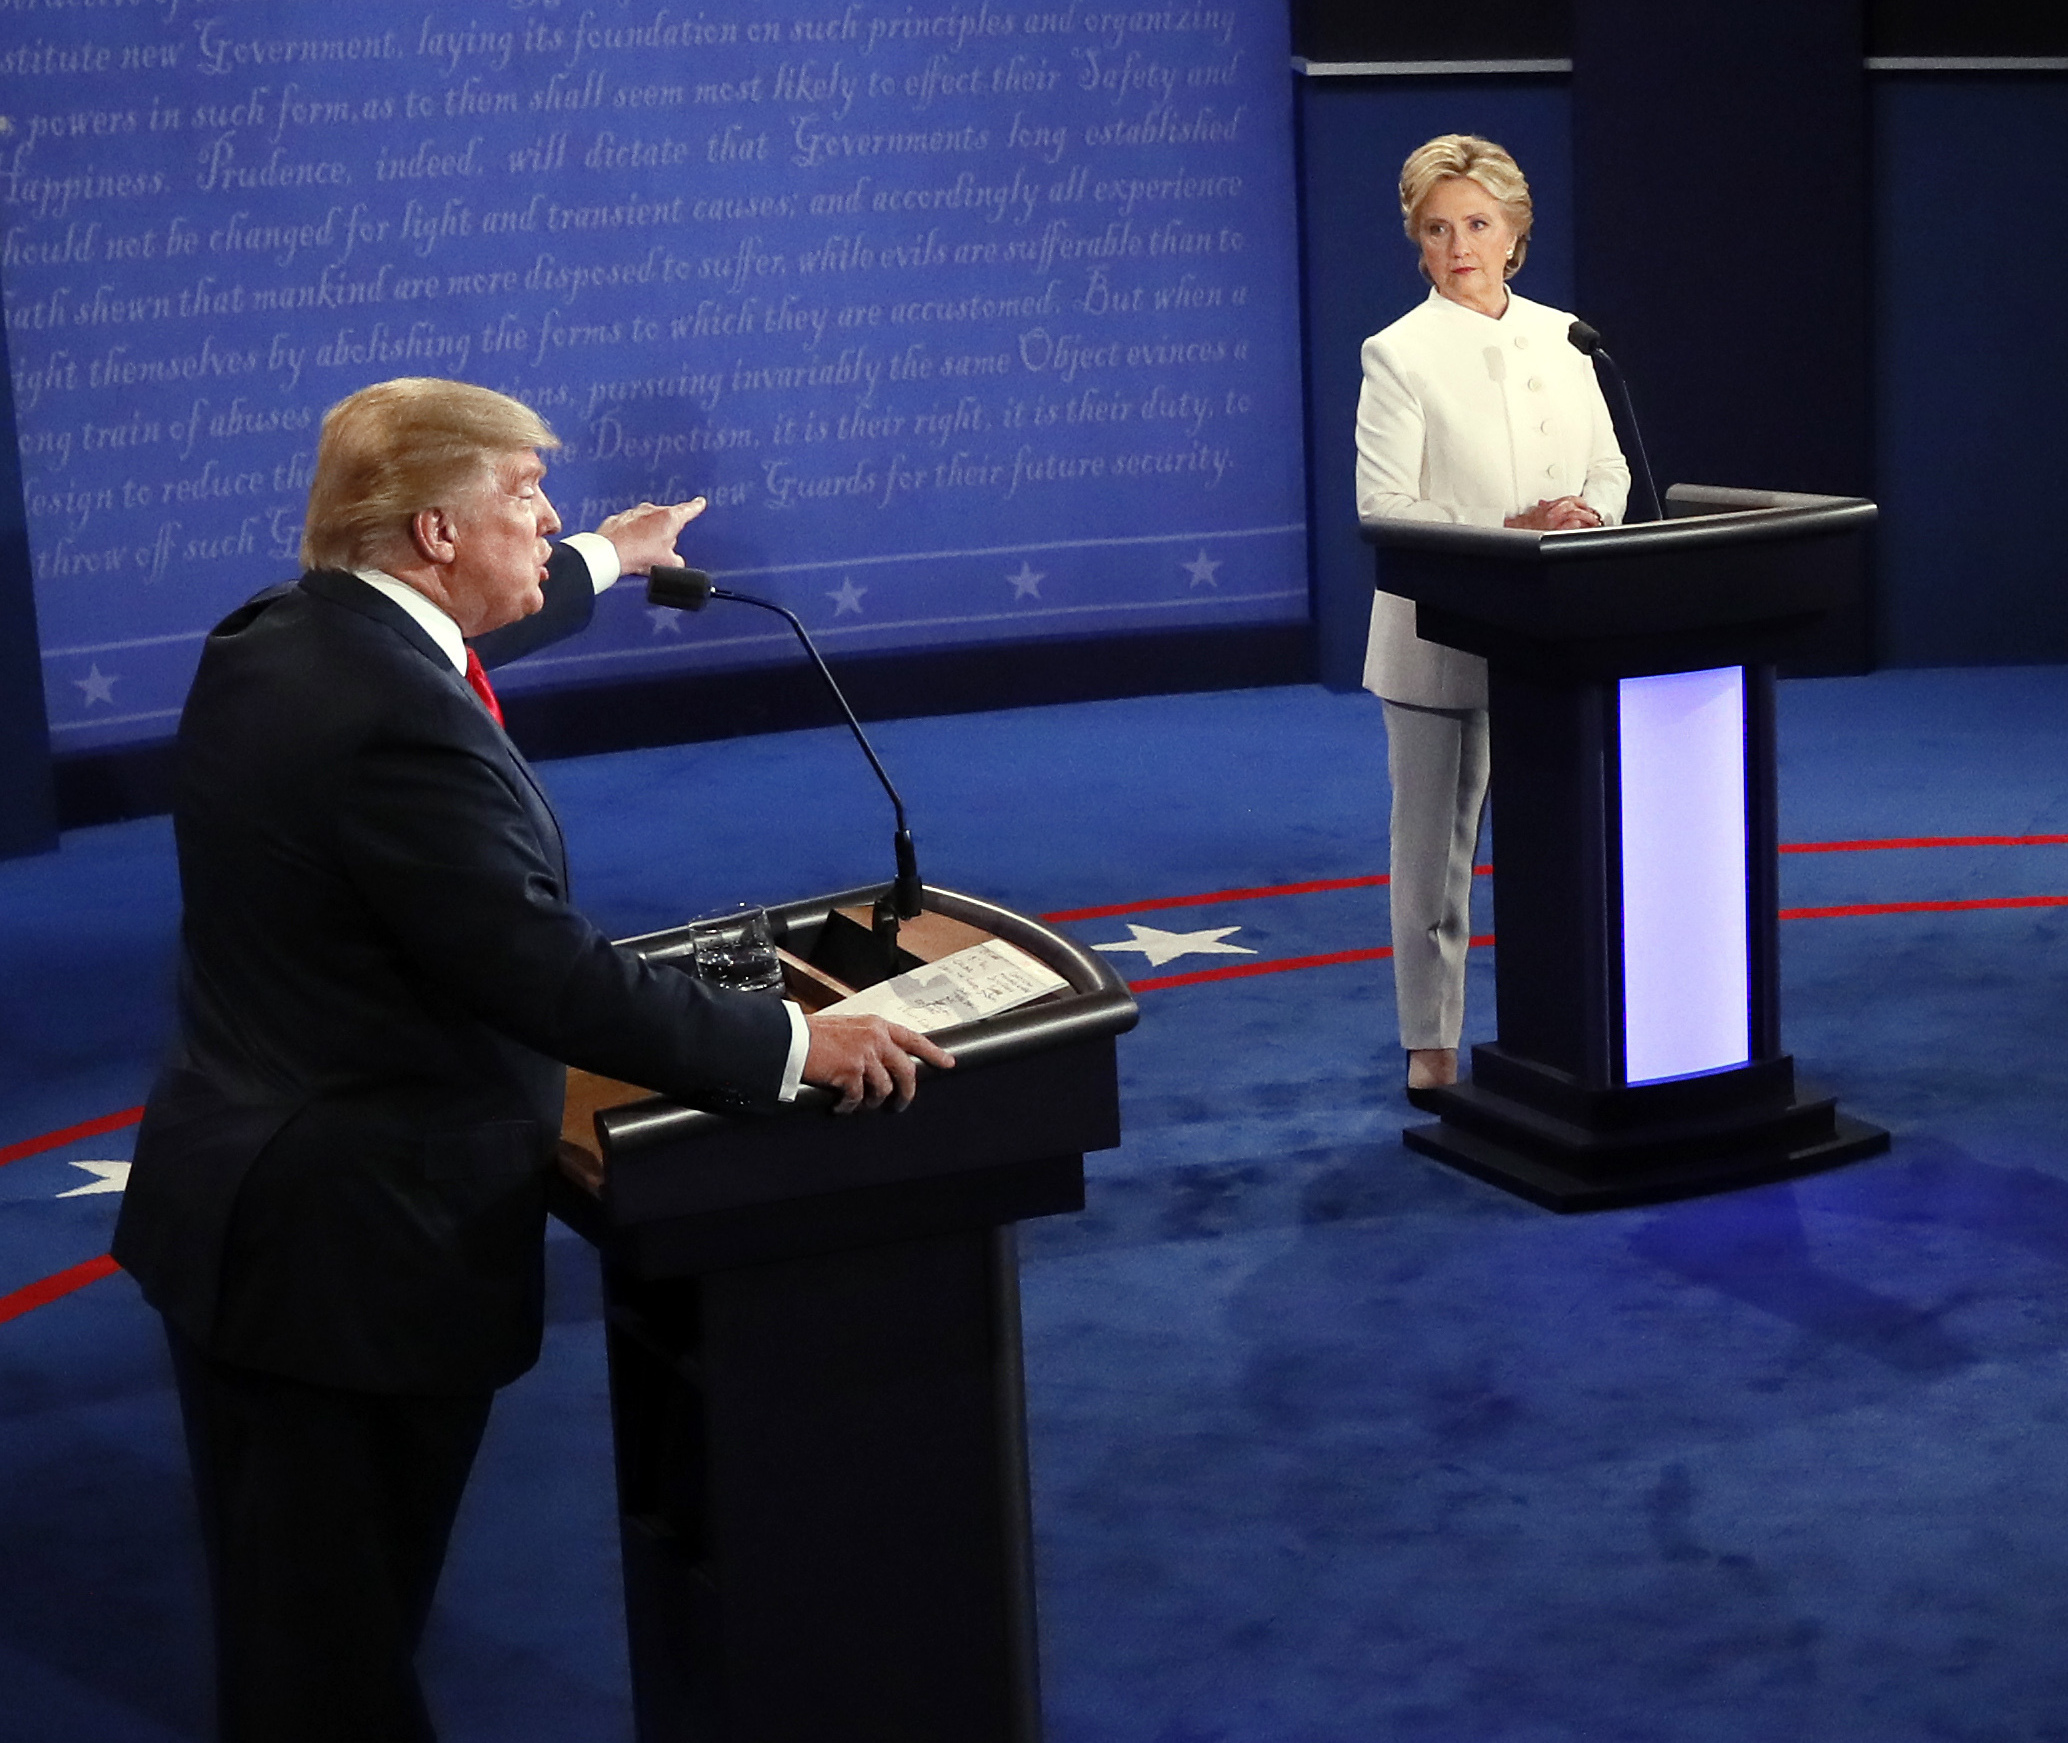 Republican presidential nominee Donald Trump debates Democratic presidential nominee Hillary Clinton during the third presidential debate at UNLV in Las Vegas,on Wednesday.